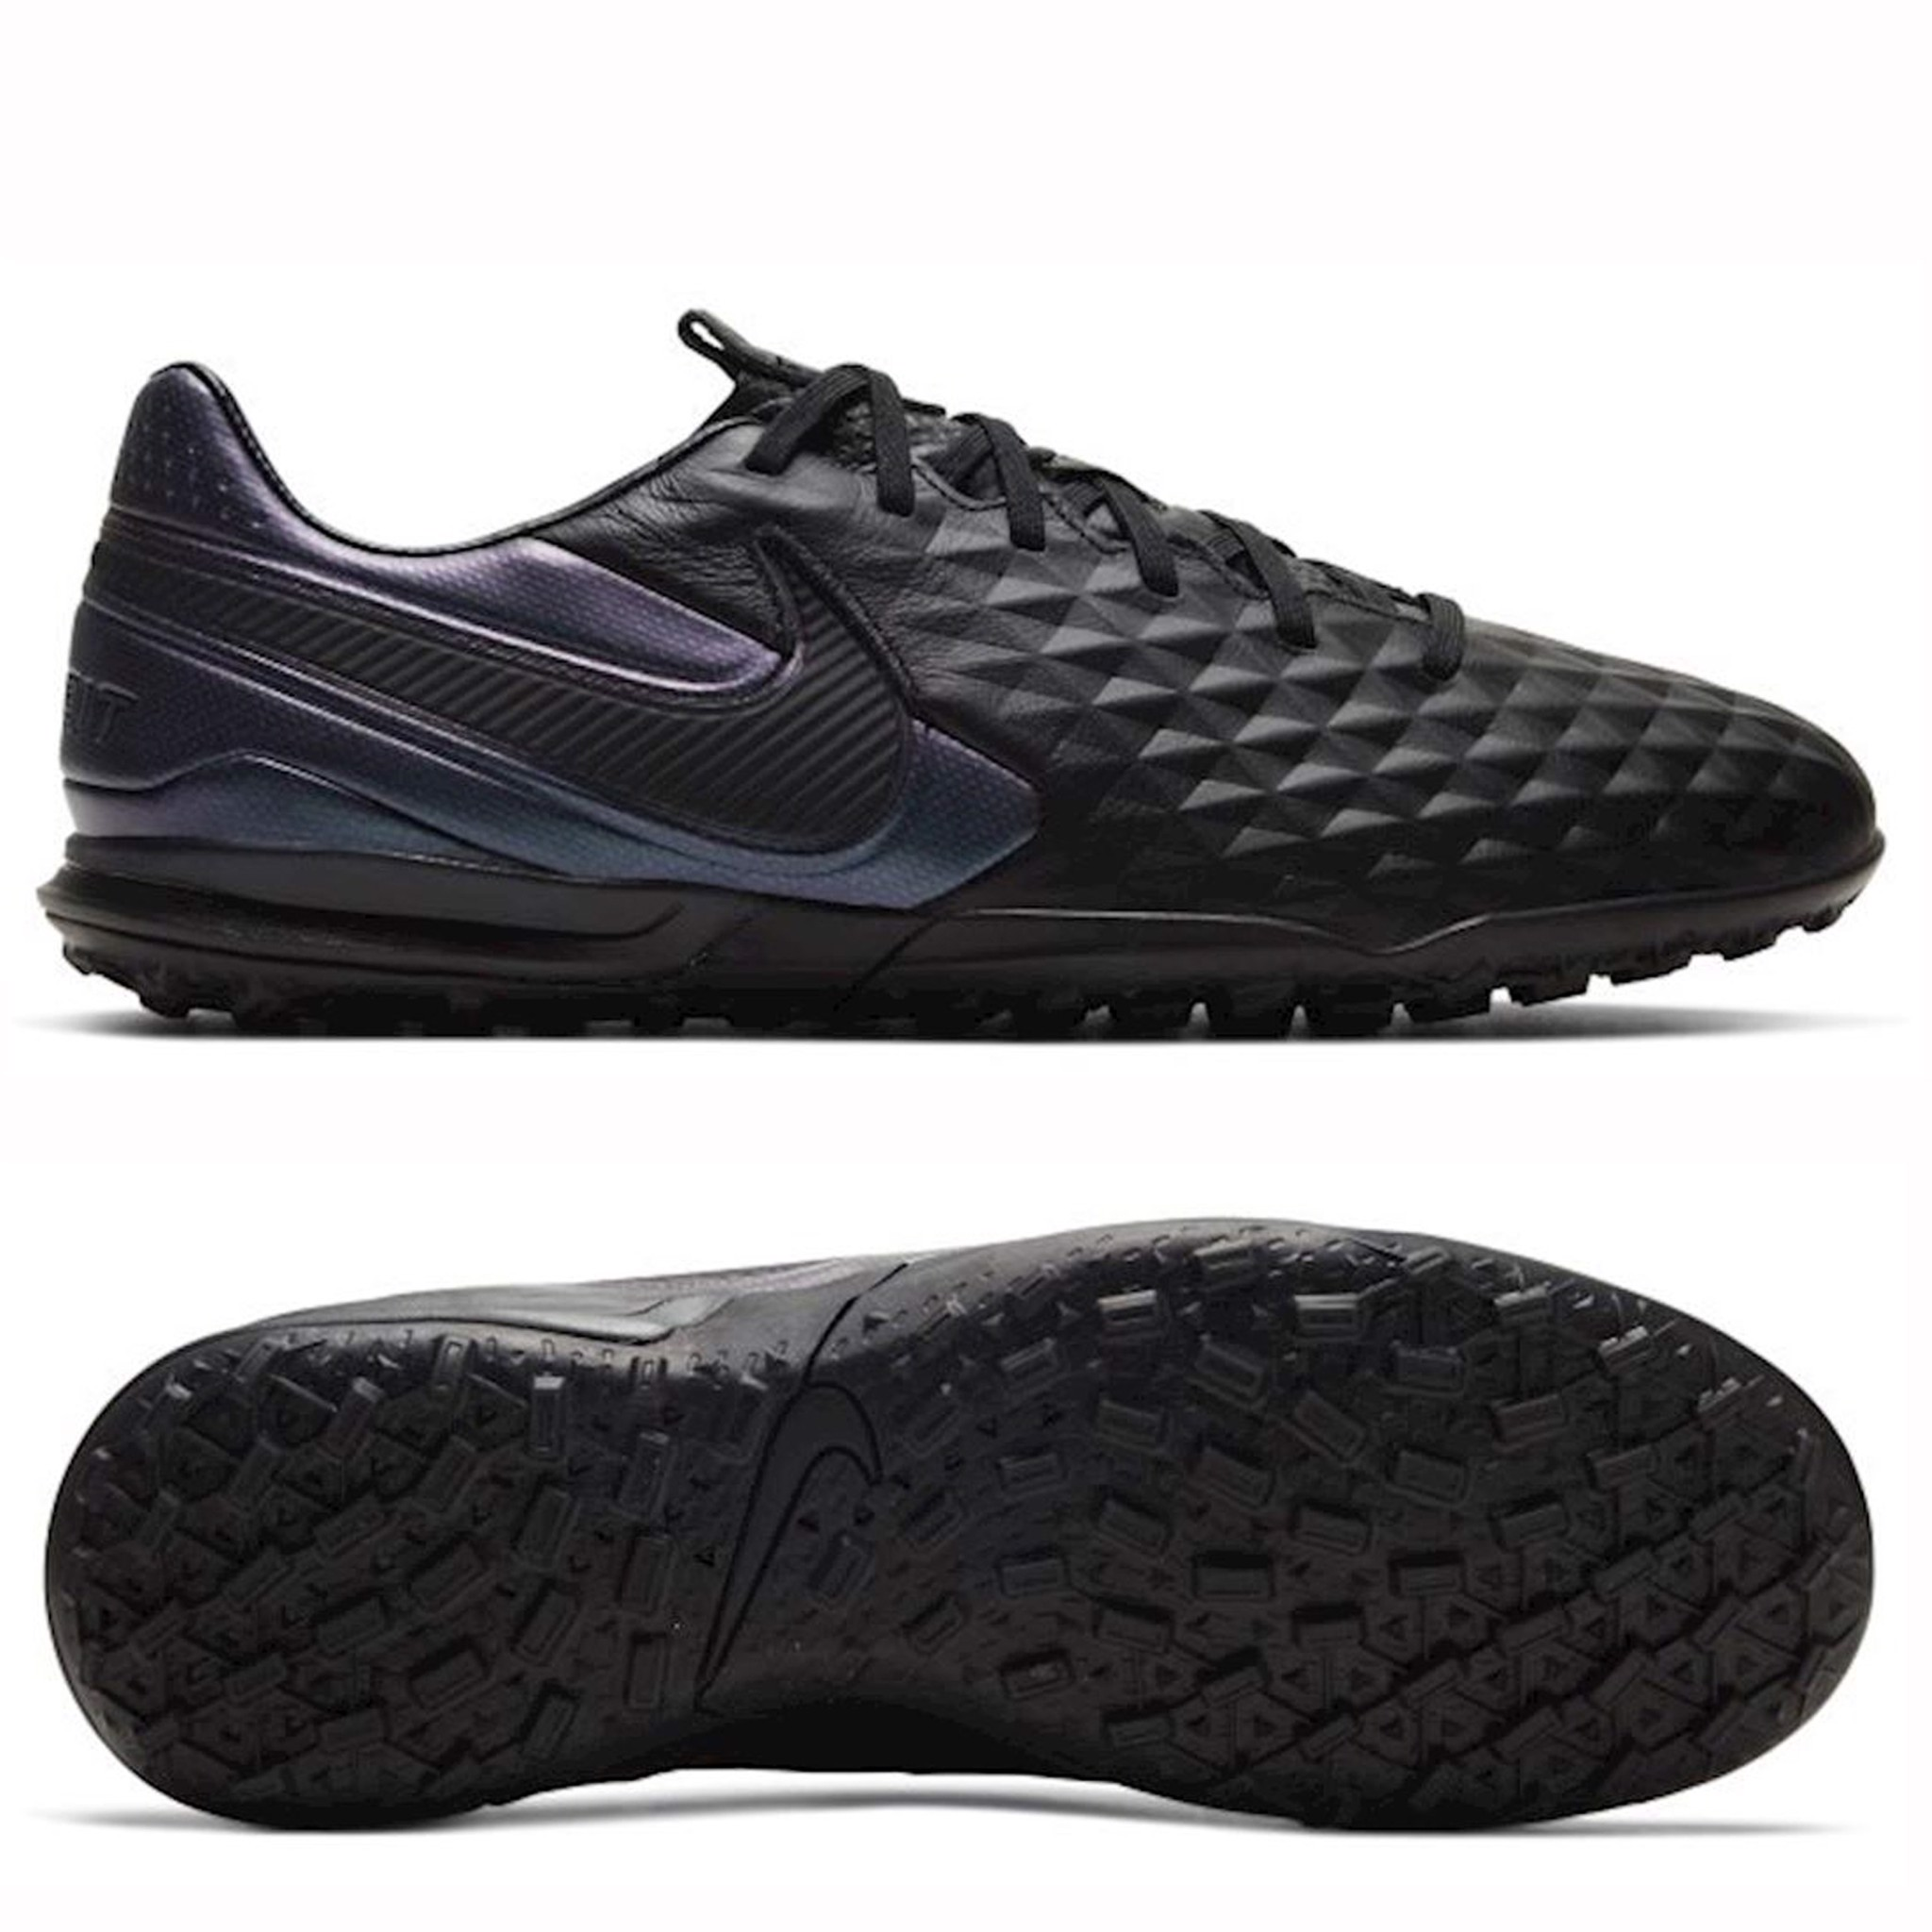 Nike Tiempo Legend 8 Pro TF Kinetic Black - Black